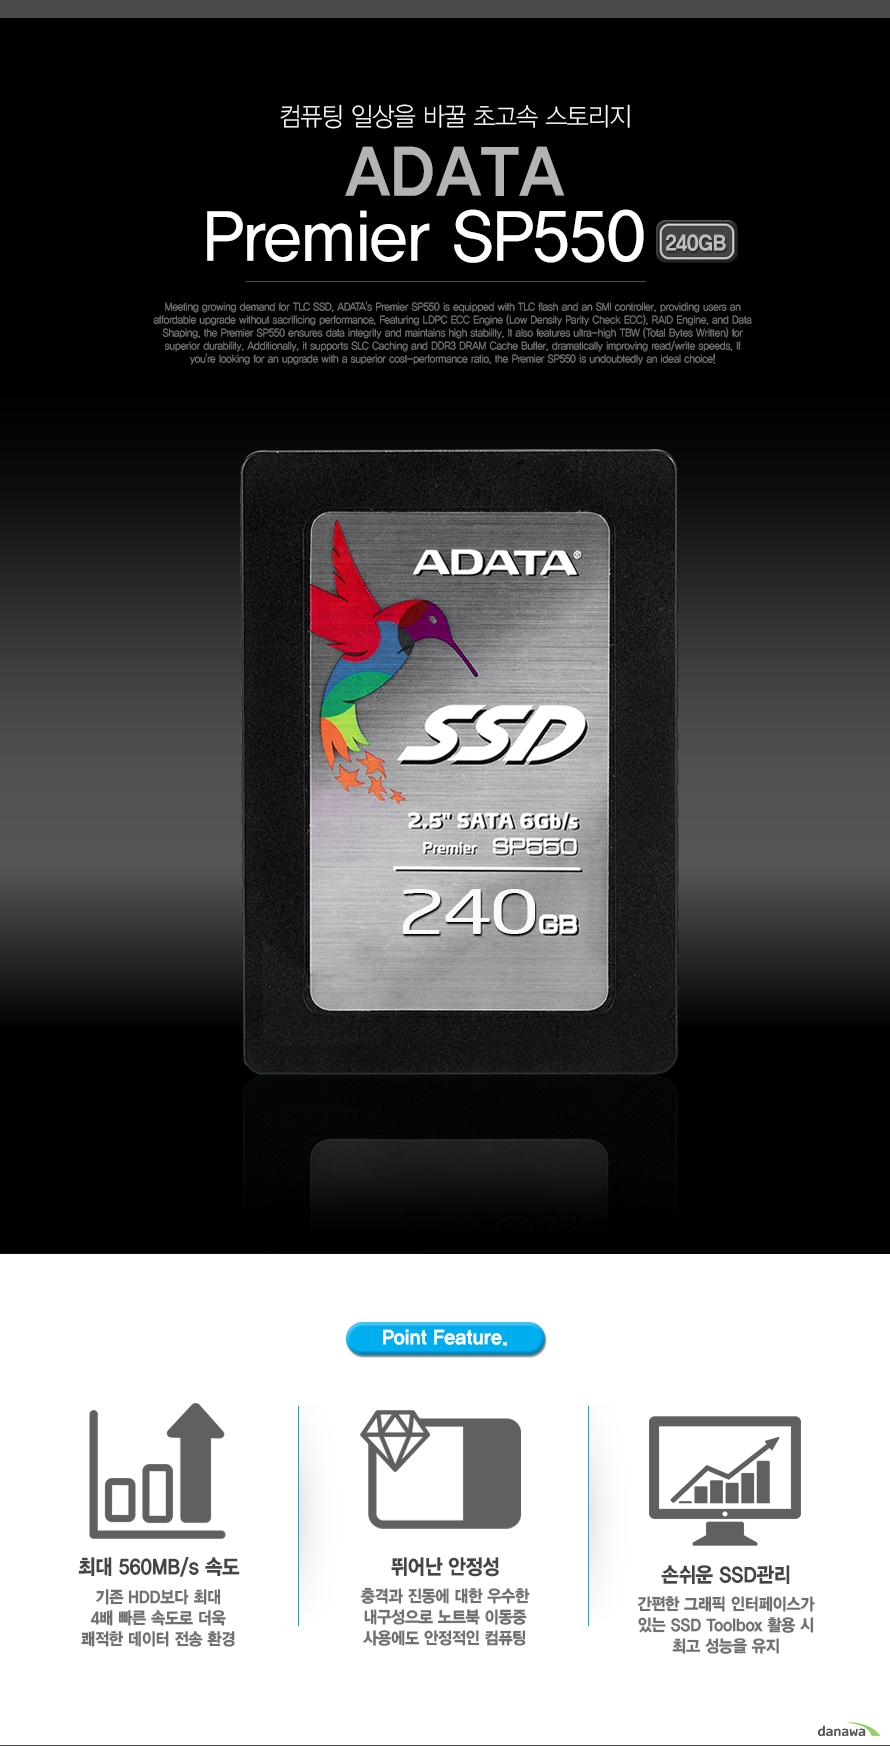 ADATA Premier SP550 (240GB)